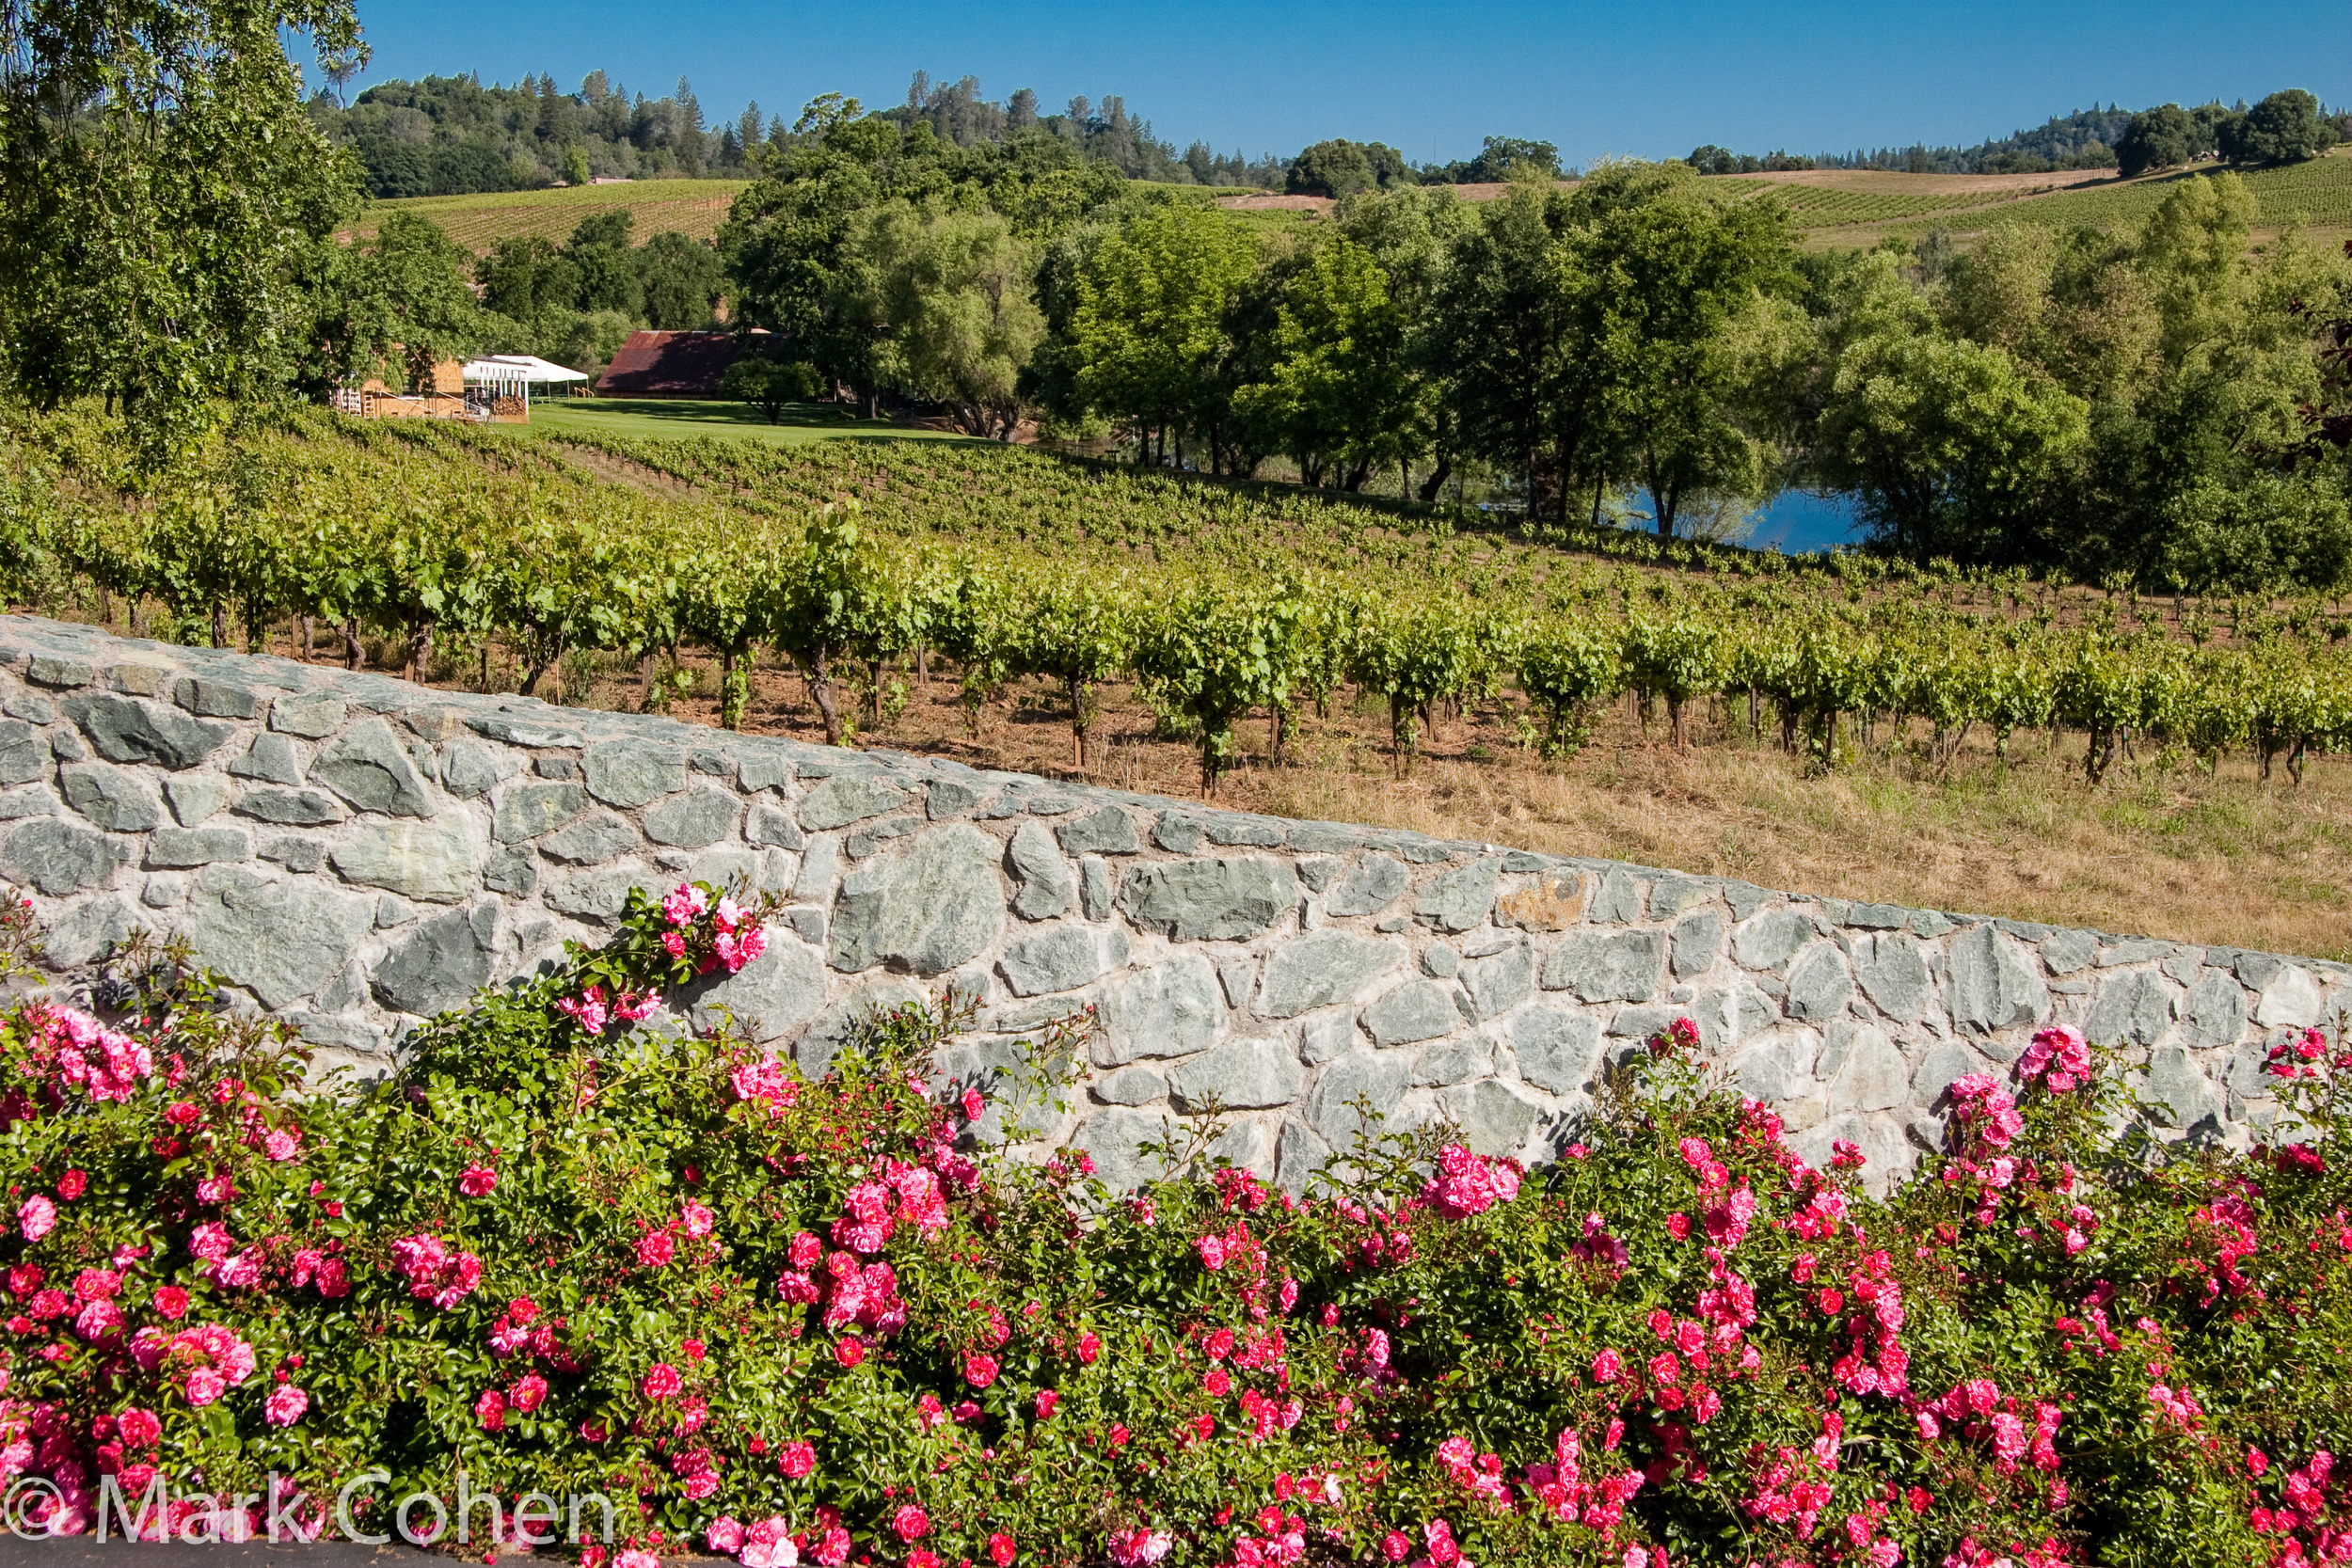 Vineyard and Deaver Winery, Amador County, 2006